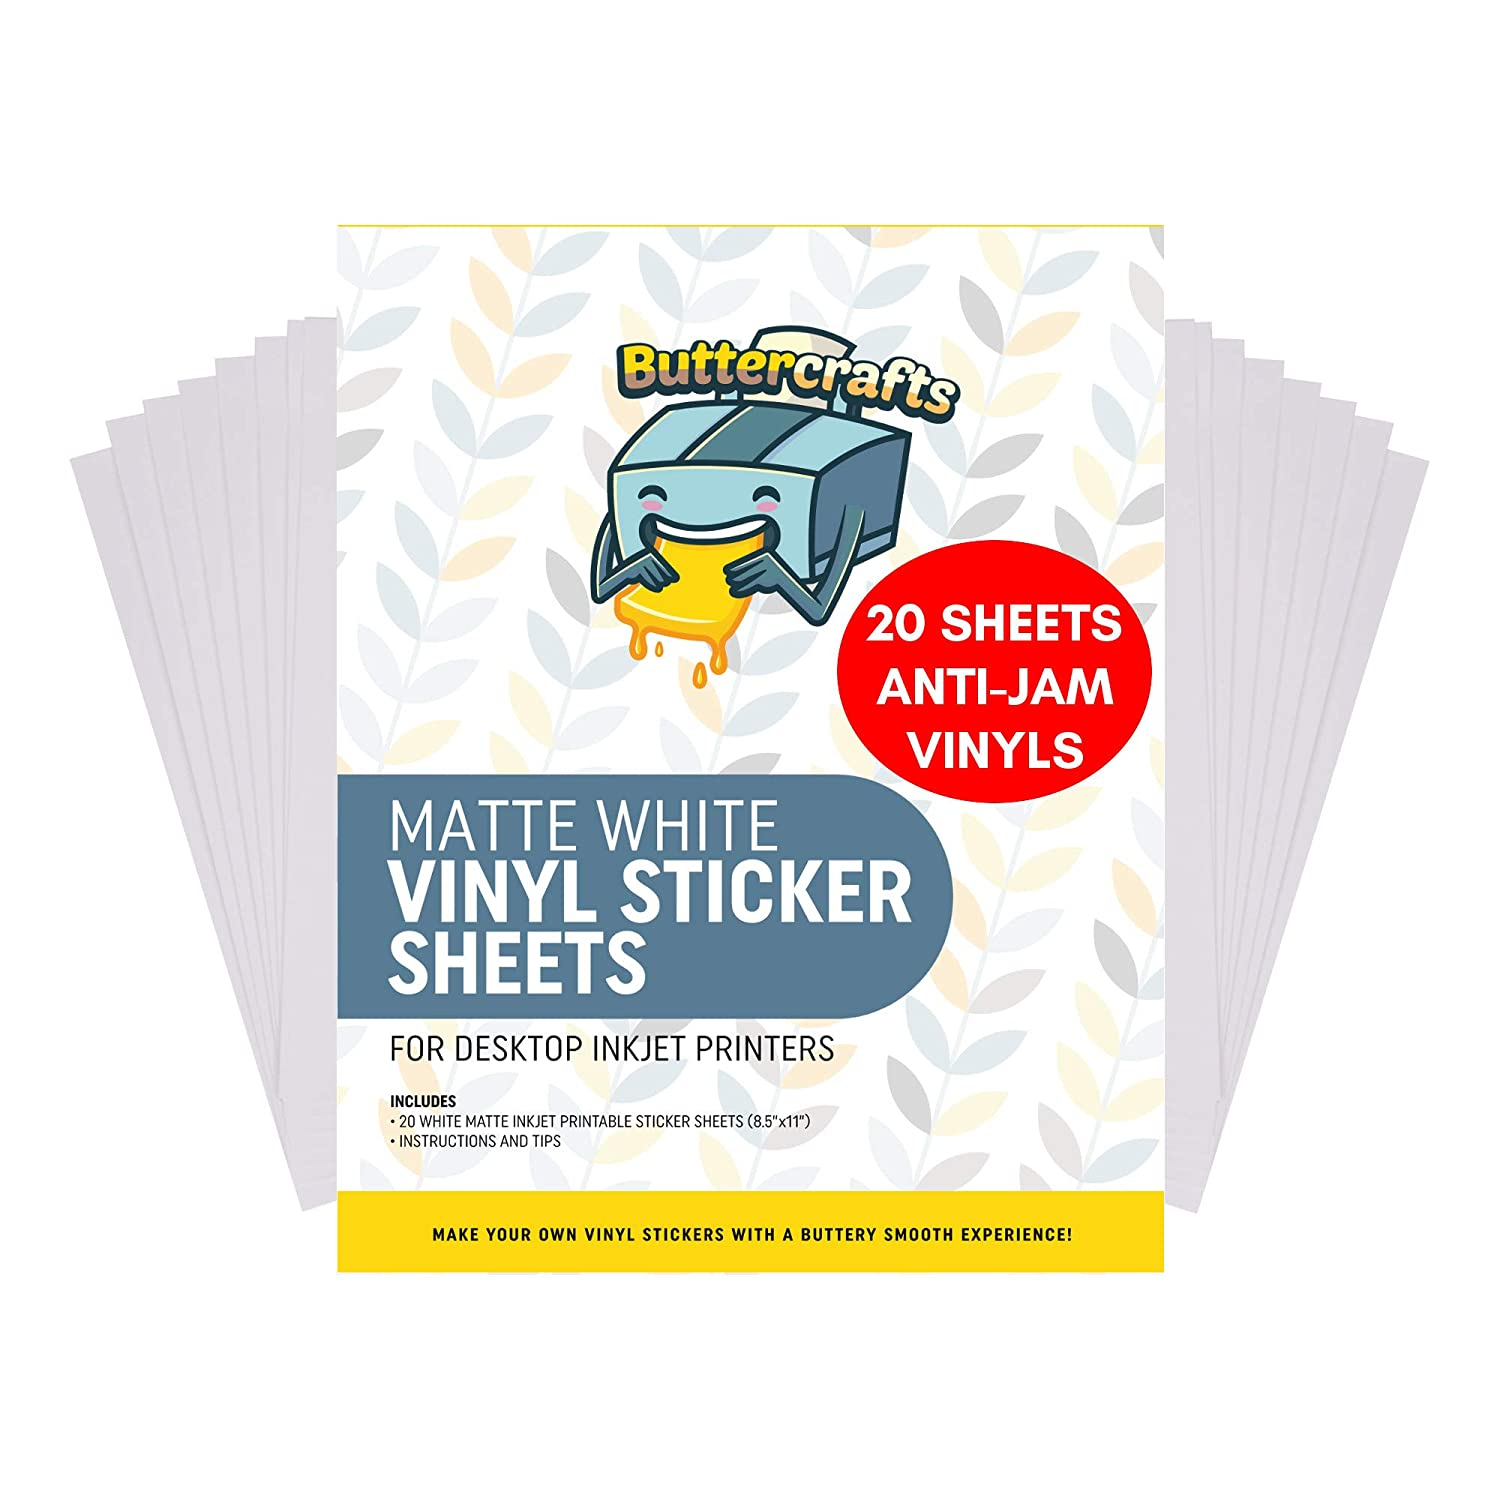 Printable Vinyl for Inkjet Printer (Matte White | Waterproof | 20 Sheets) - Inkjet Printable Vinyl Avoid Jams for Printers | Printable Waterproof ...